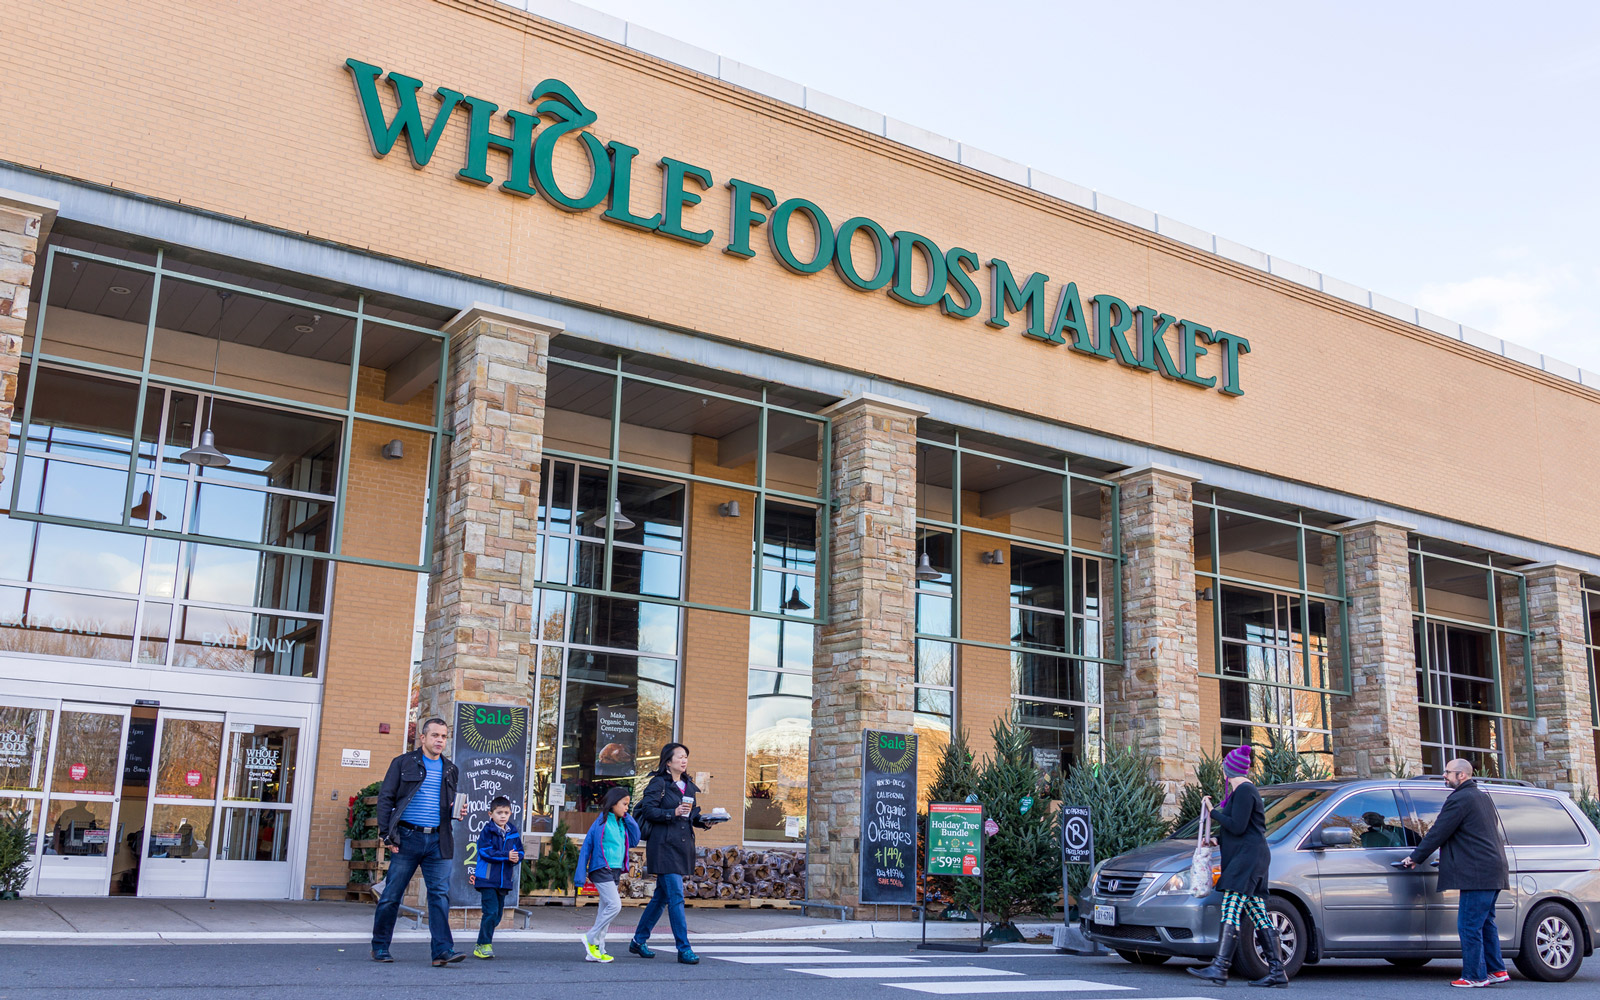 Whole Foods Market store facade